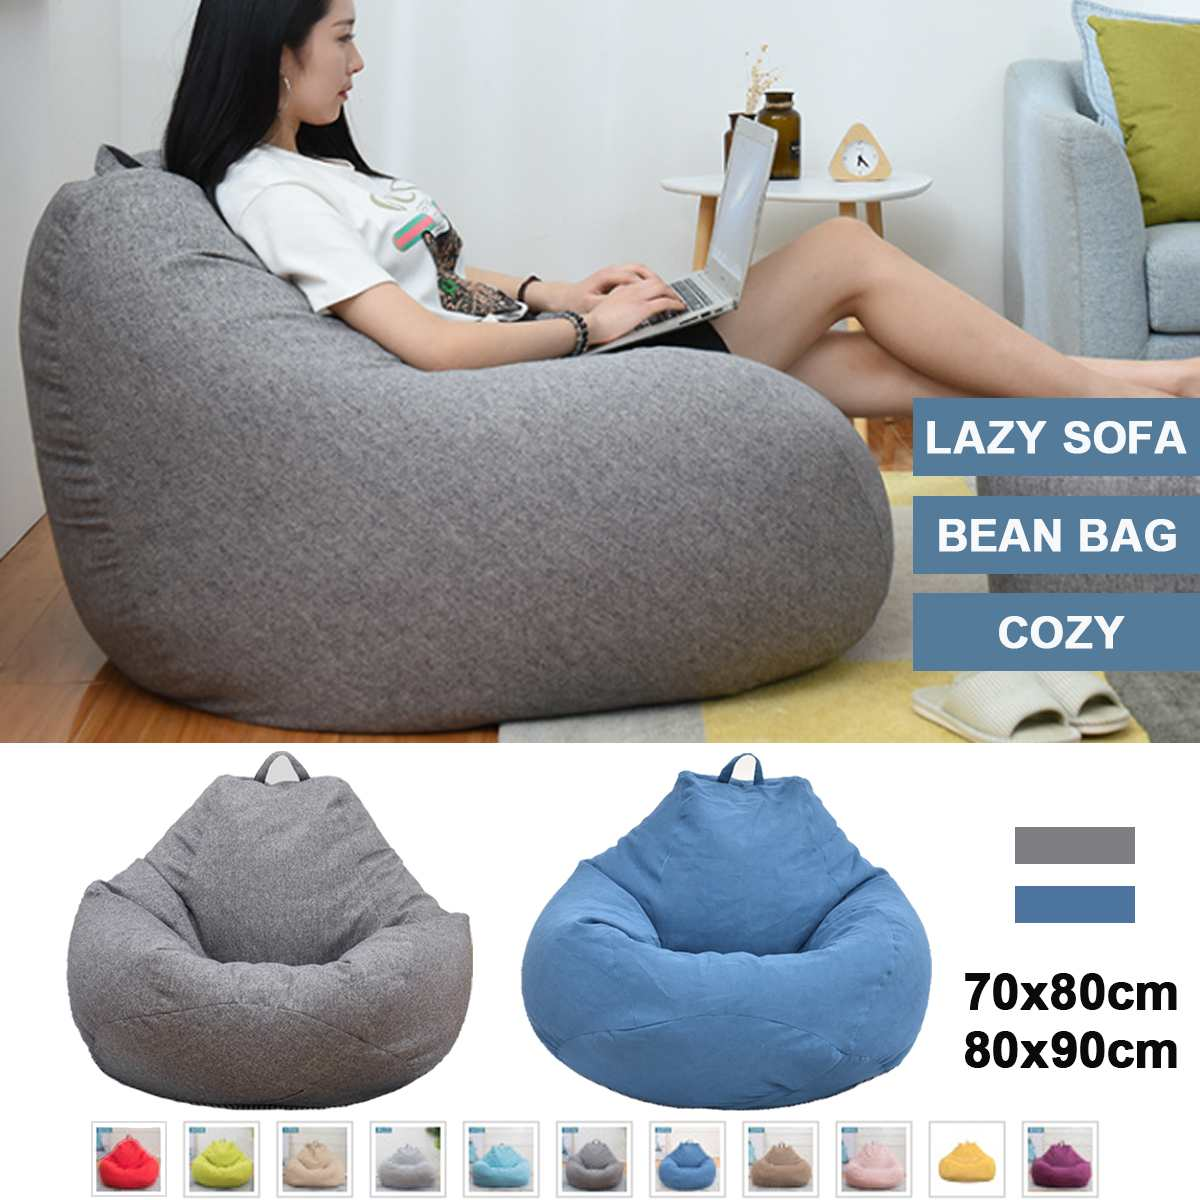 Beanbag Sofas Lounger Chair Sofa Cotton Chair Cover Waterproof Stuffed Animal Ottoman Seat Bean Bag without Filling Only CoverBeanbag Sofas Lounger Chair Sofa Cotton Chair Cover Waterproof Stuffed Animal Ottoman Seat Bean Bag without Filling Only Cover